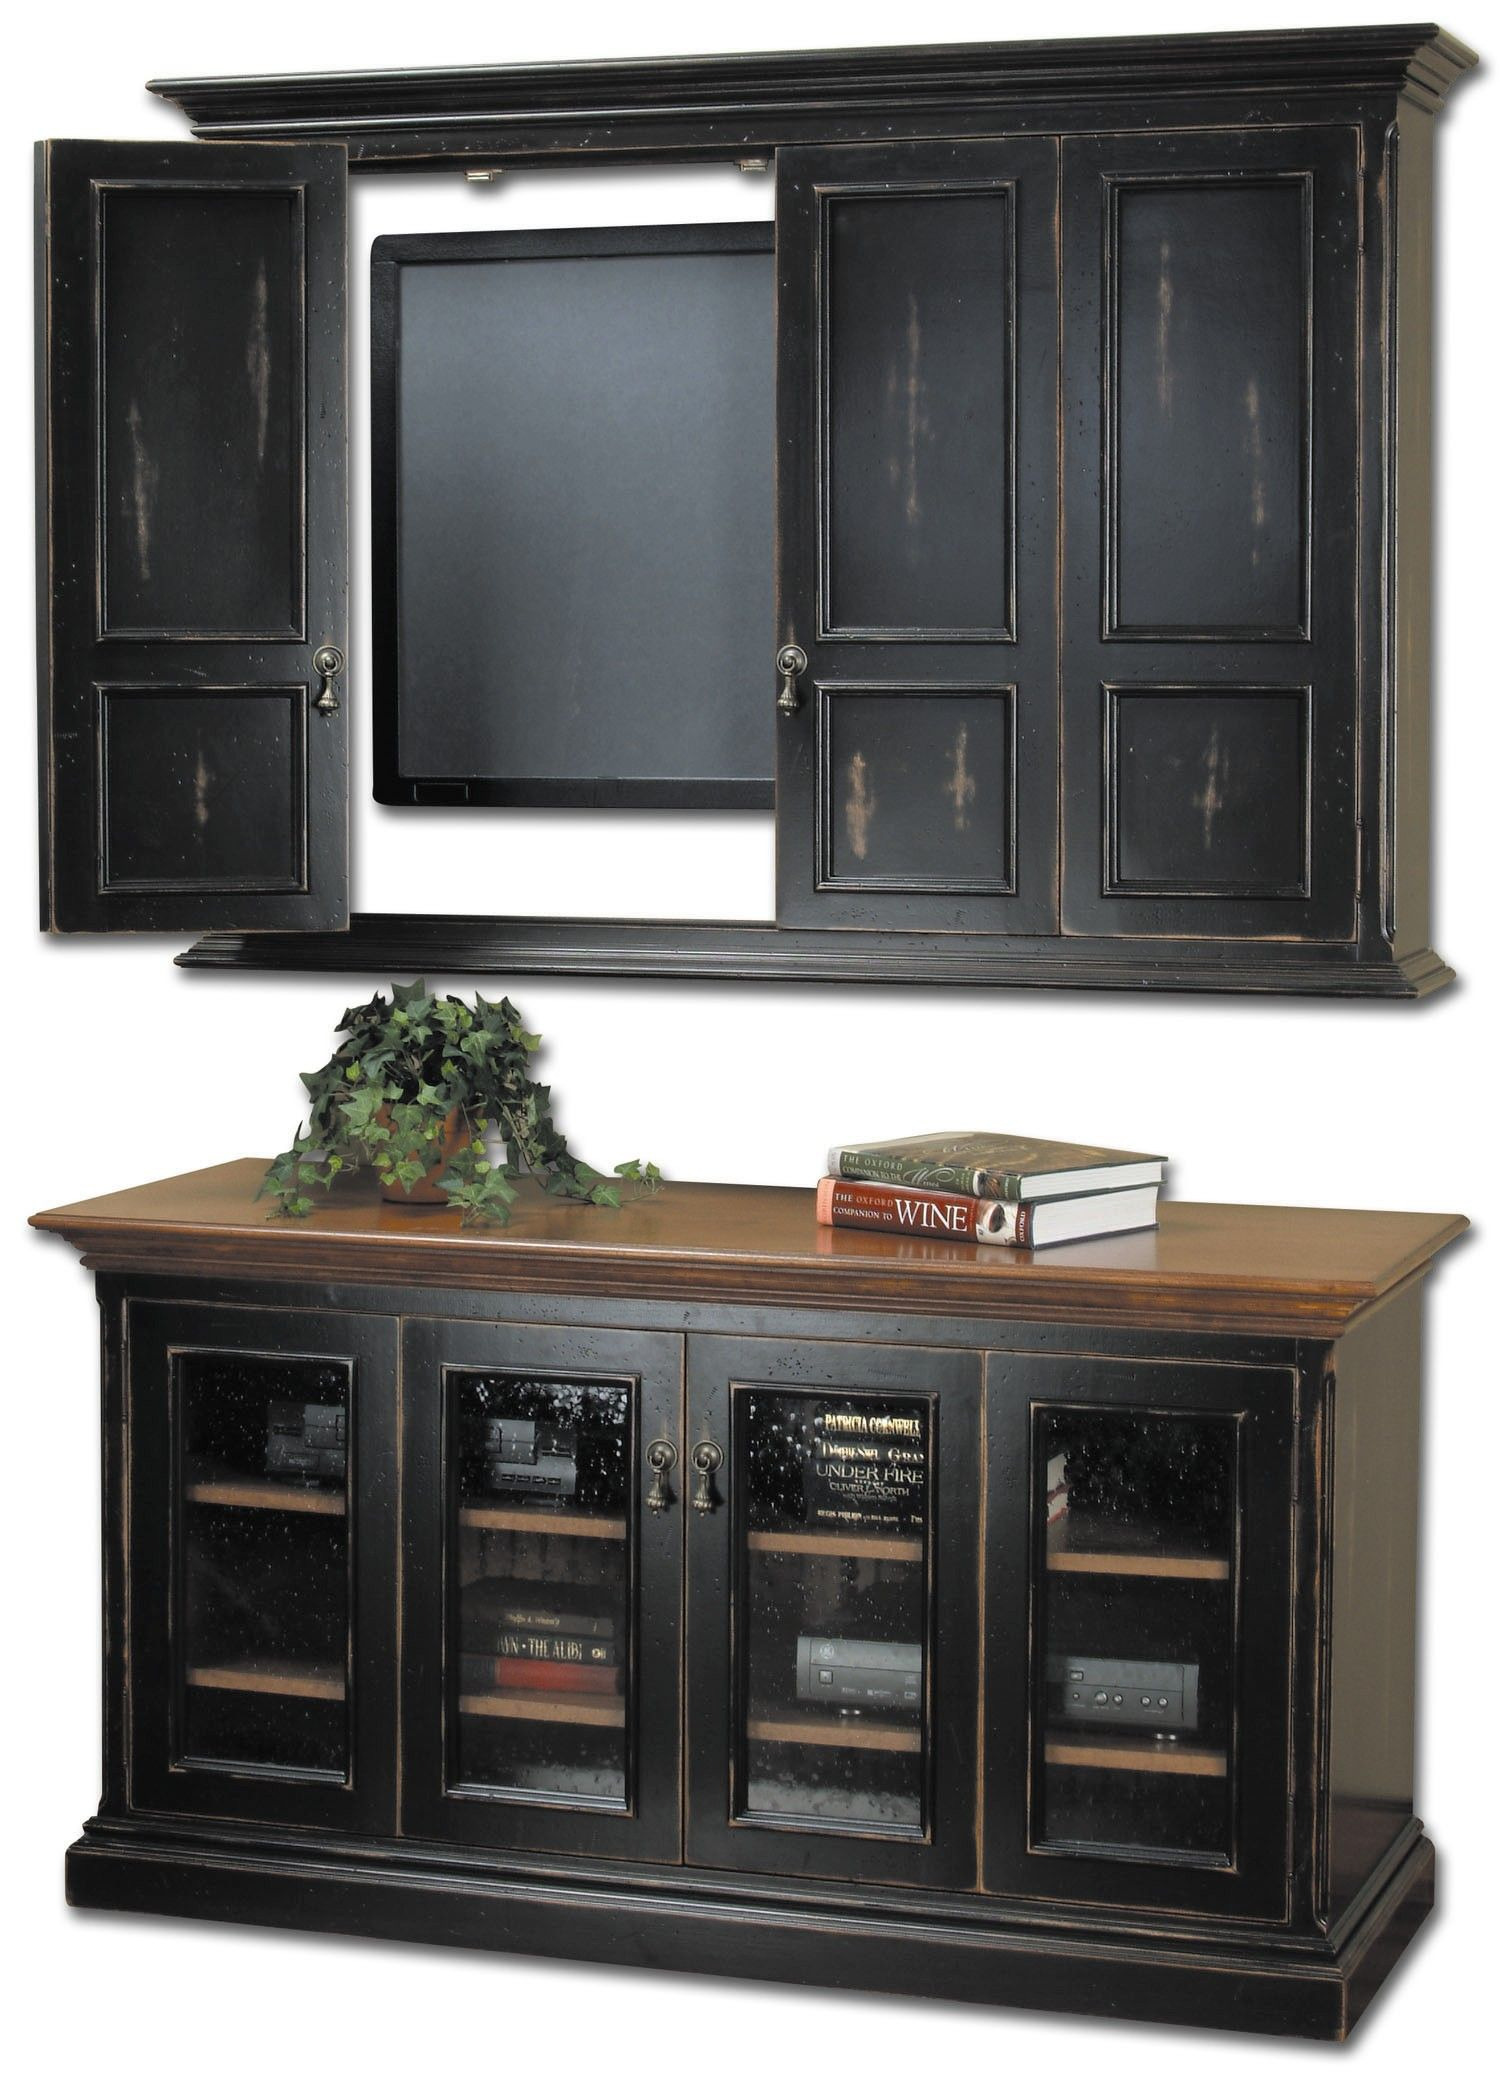 Tv Cabinet with Doors for Flat Screen Inspirational Flat Screen Tv Wall Cabinet for Our Back Deck